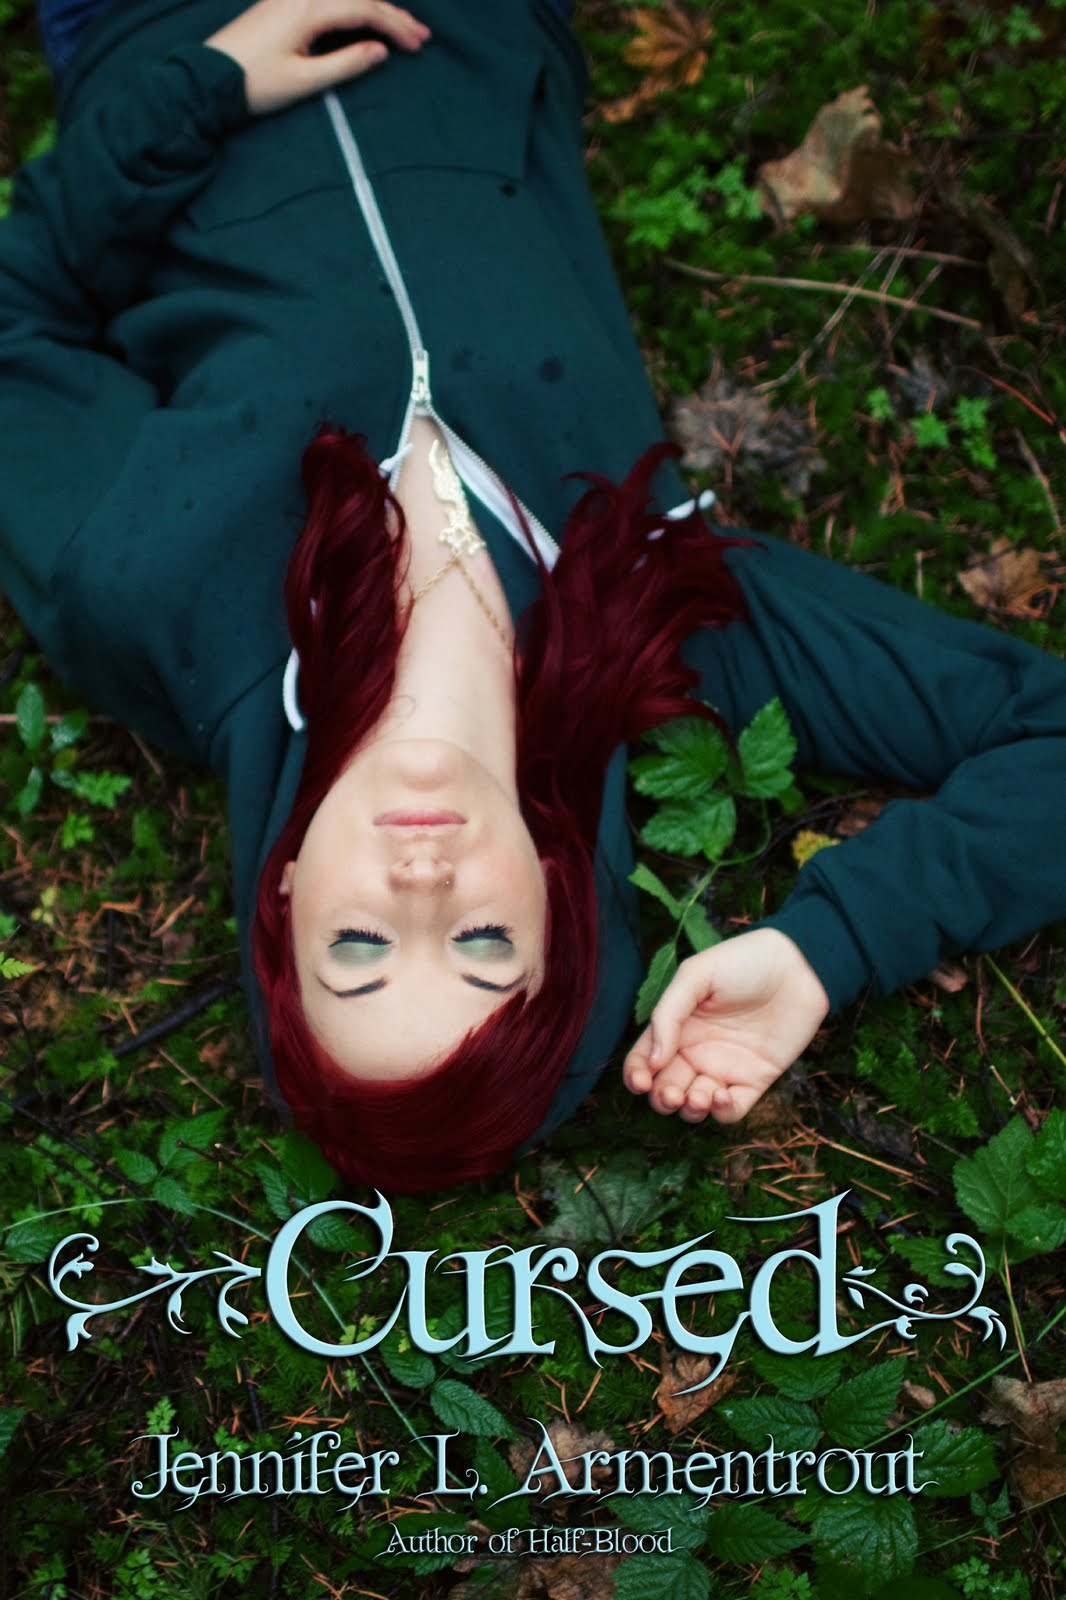 O.D. Book Reviews: Cursed By Jennifer Armentrout (REVIEW